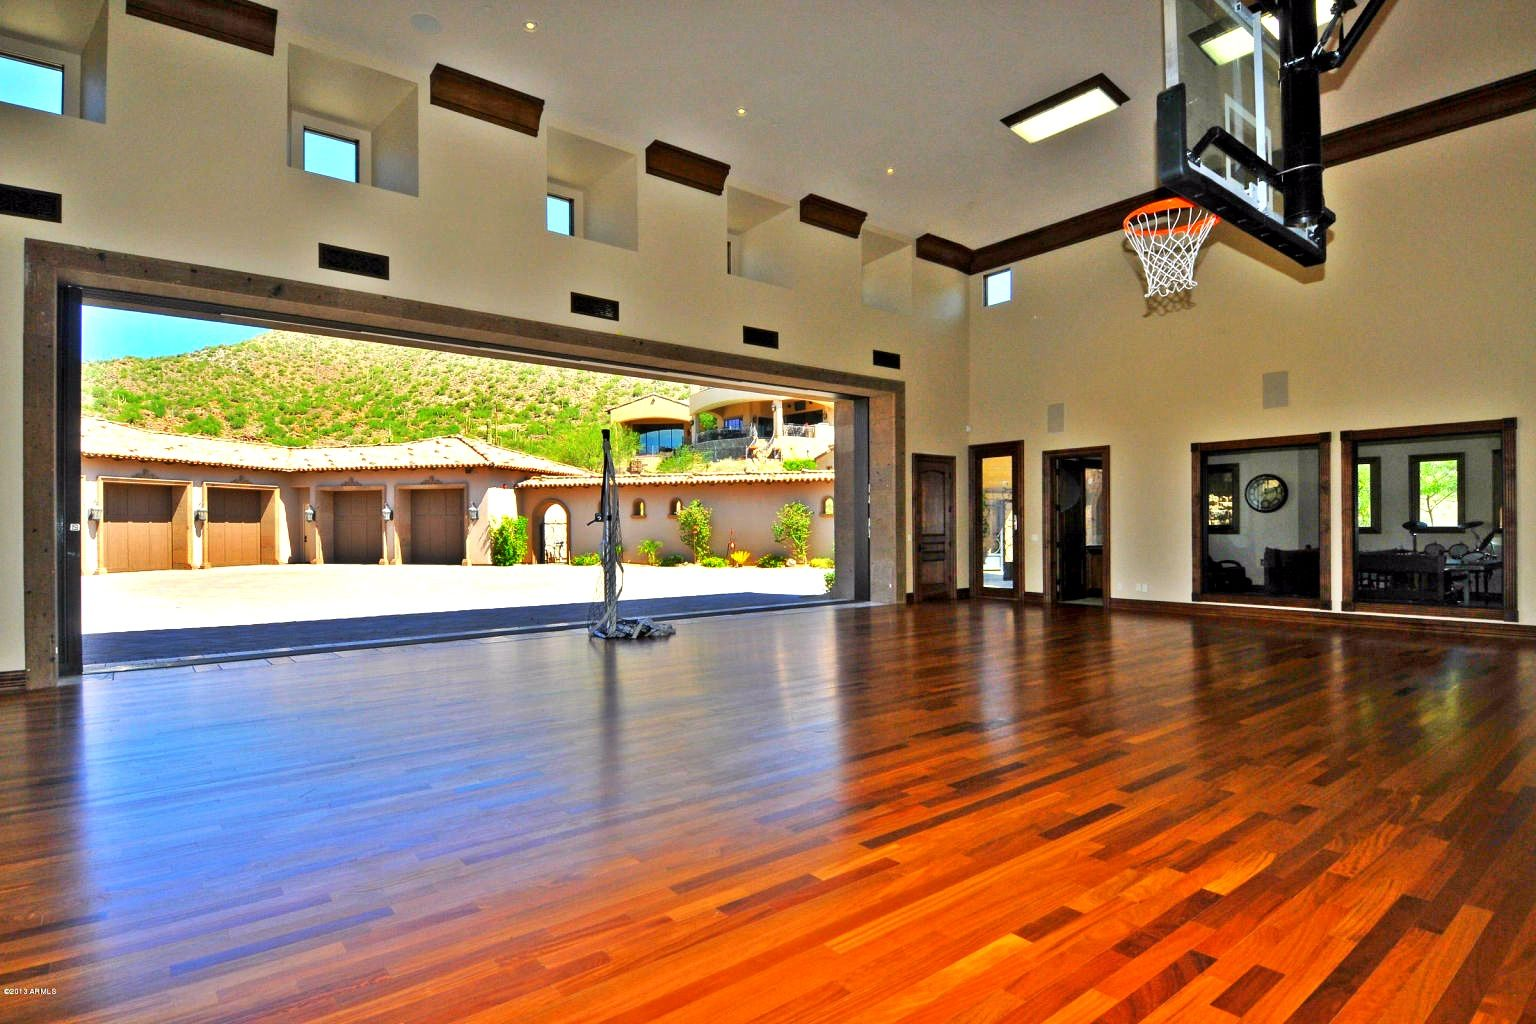 Indoor basketball court diamond point 1 las sendas for Indoor basketball court plans